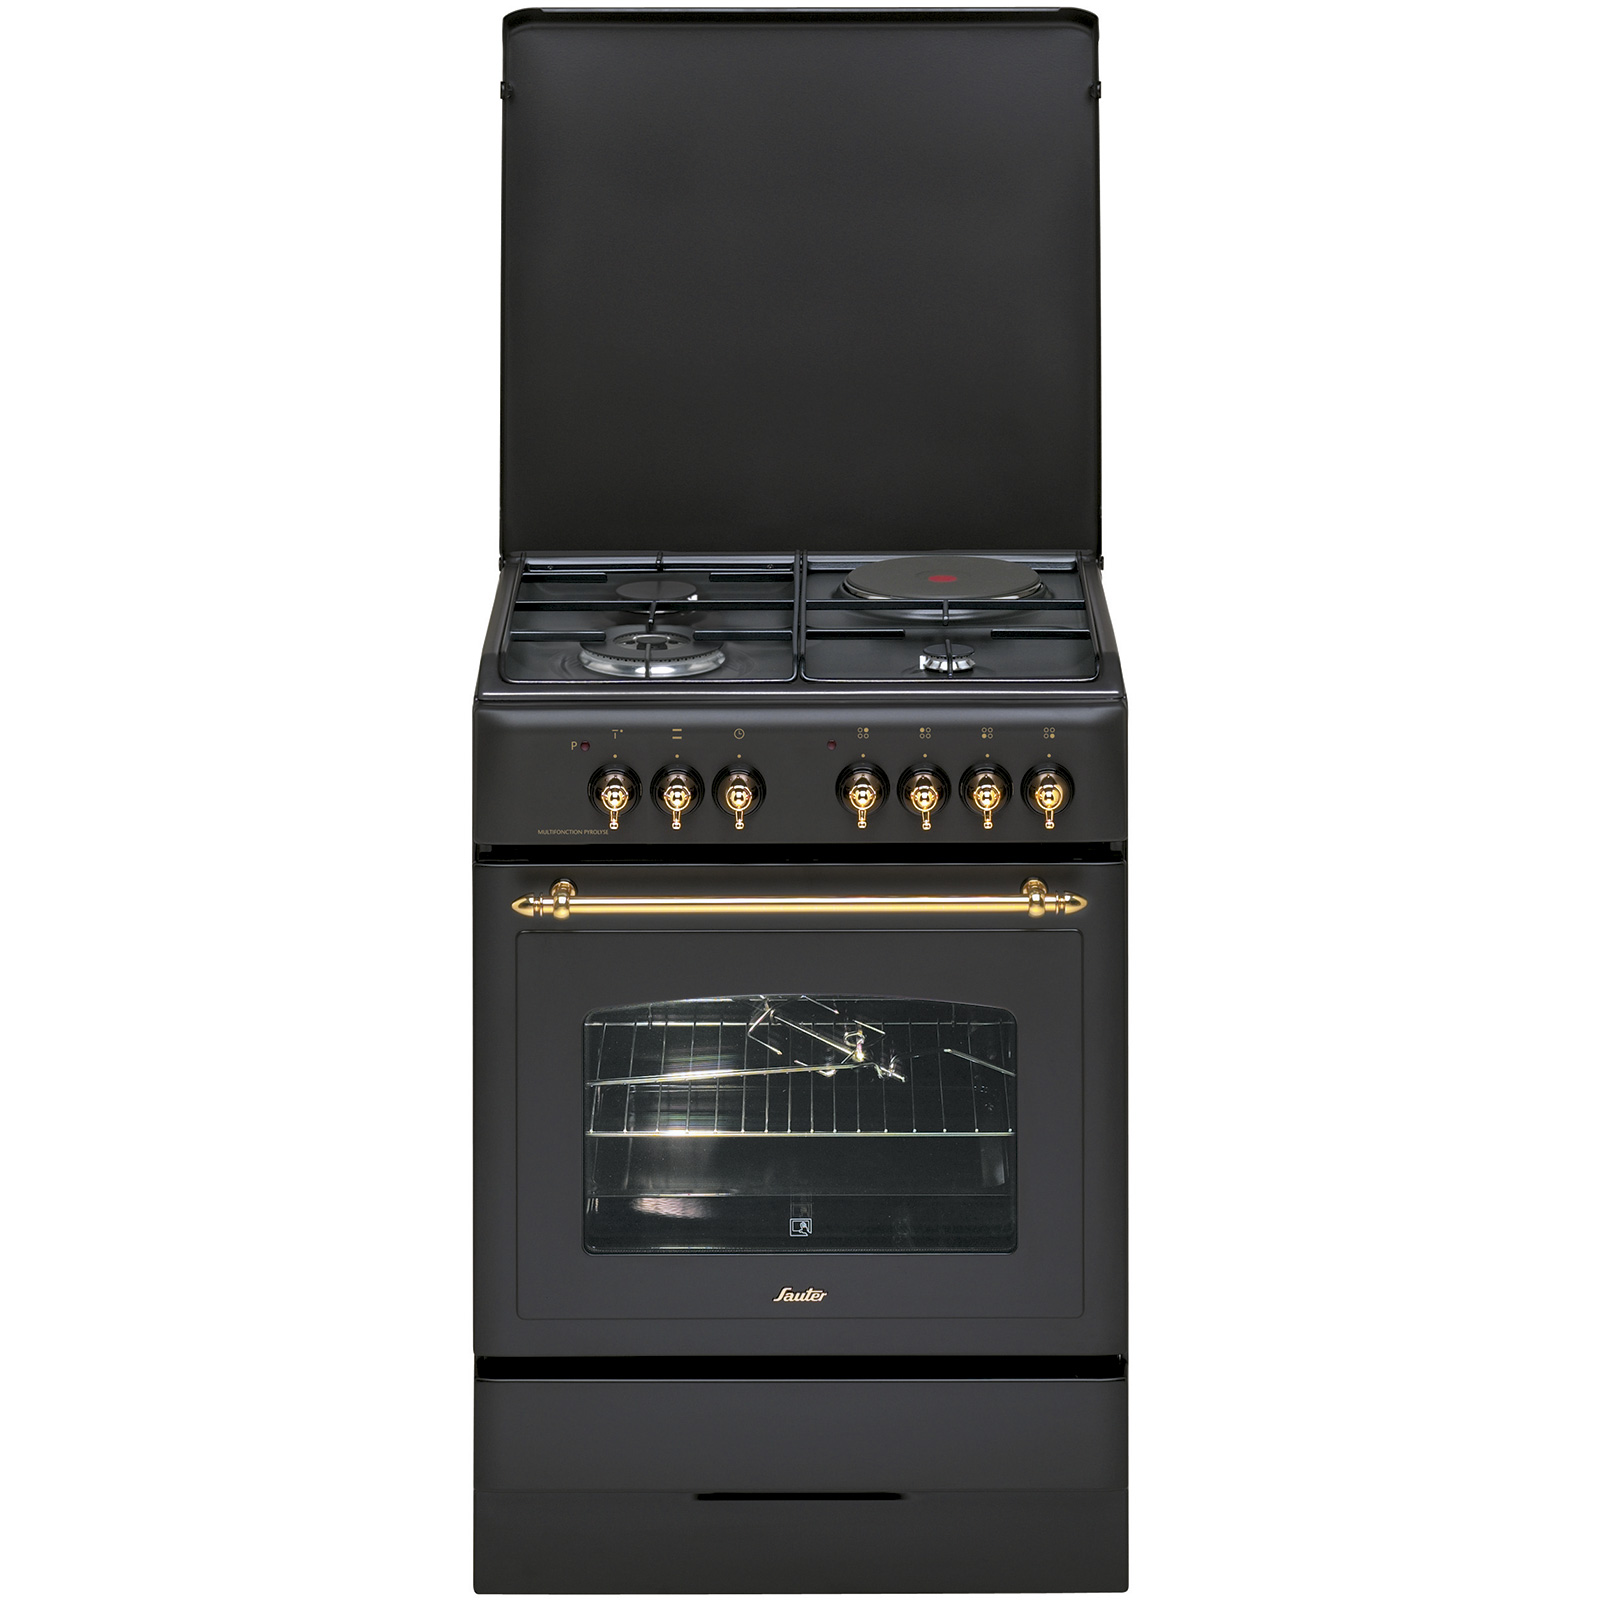 meilleur cuisiniere induction beko pas cher. Black Bedroom Furniture Sets. Home Design Ideas